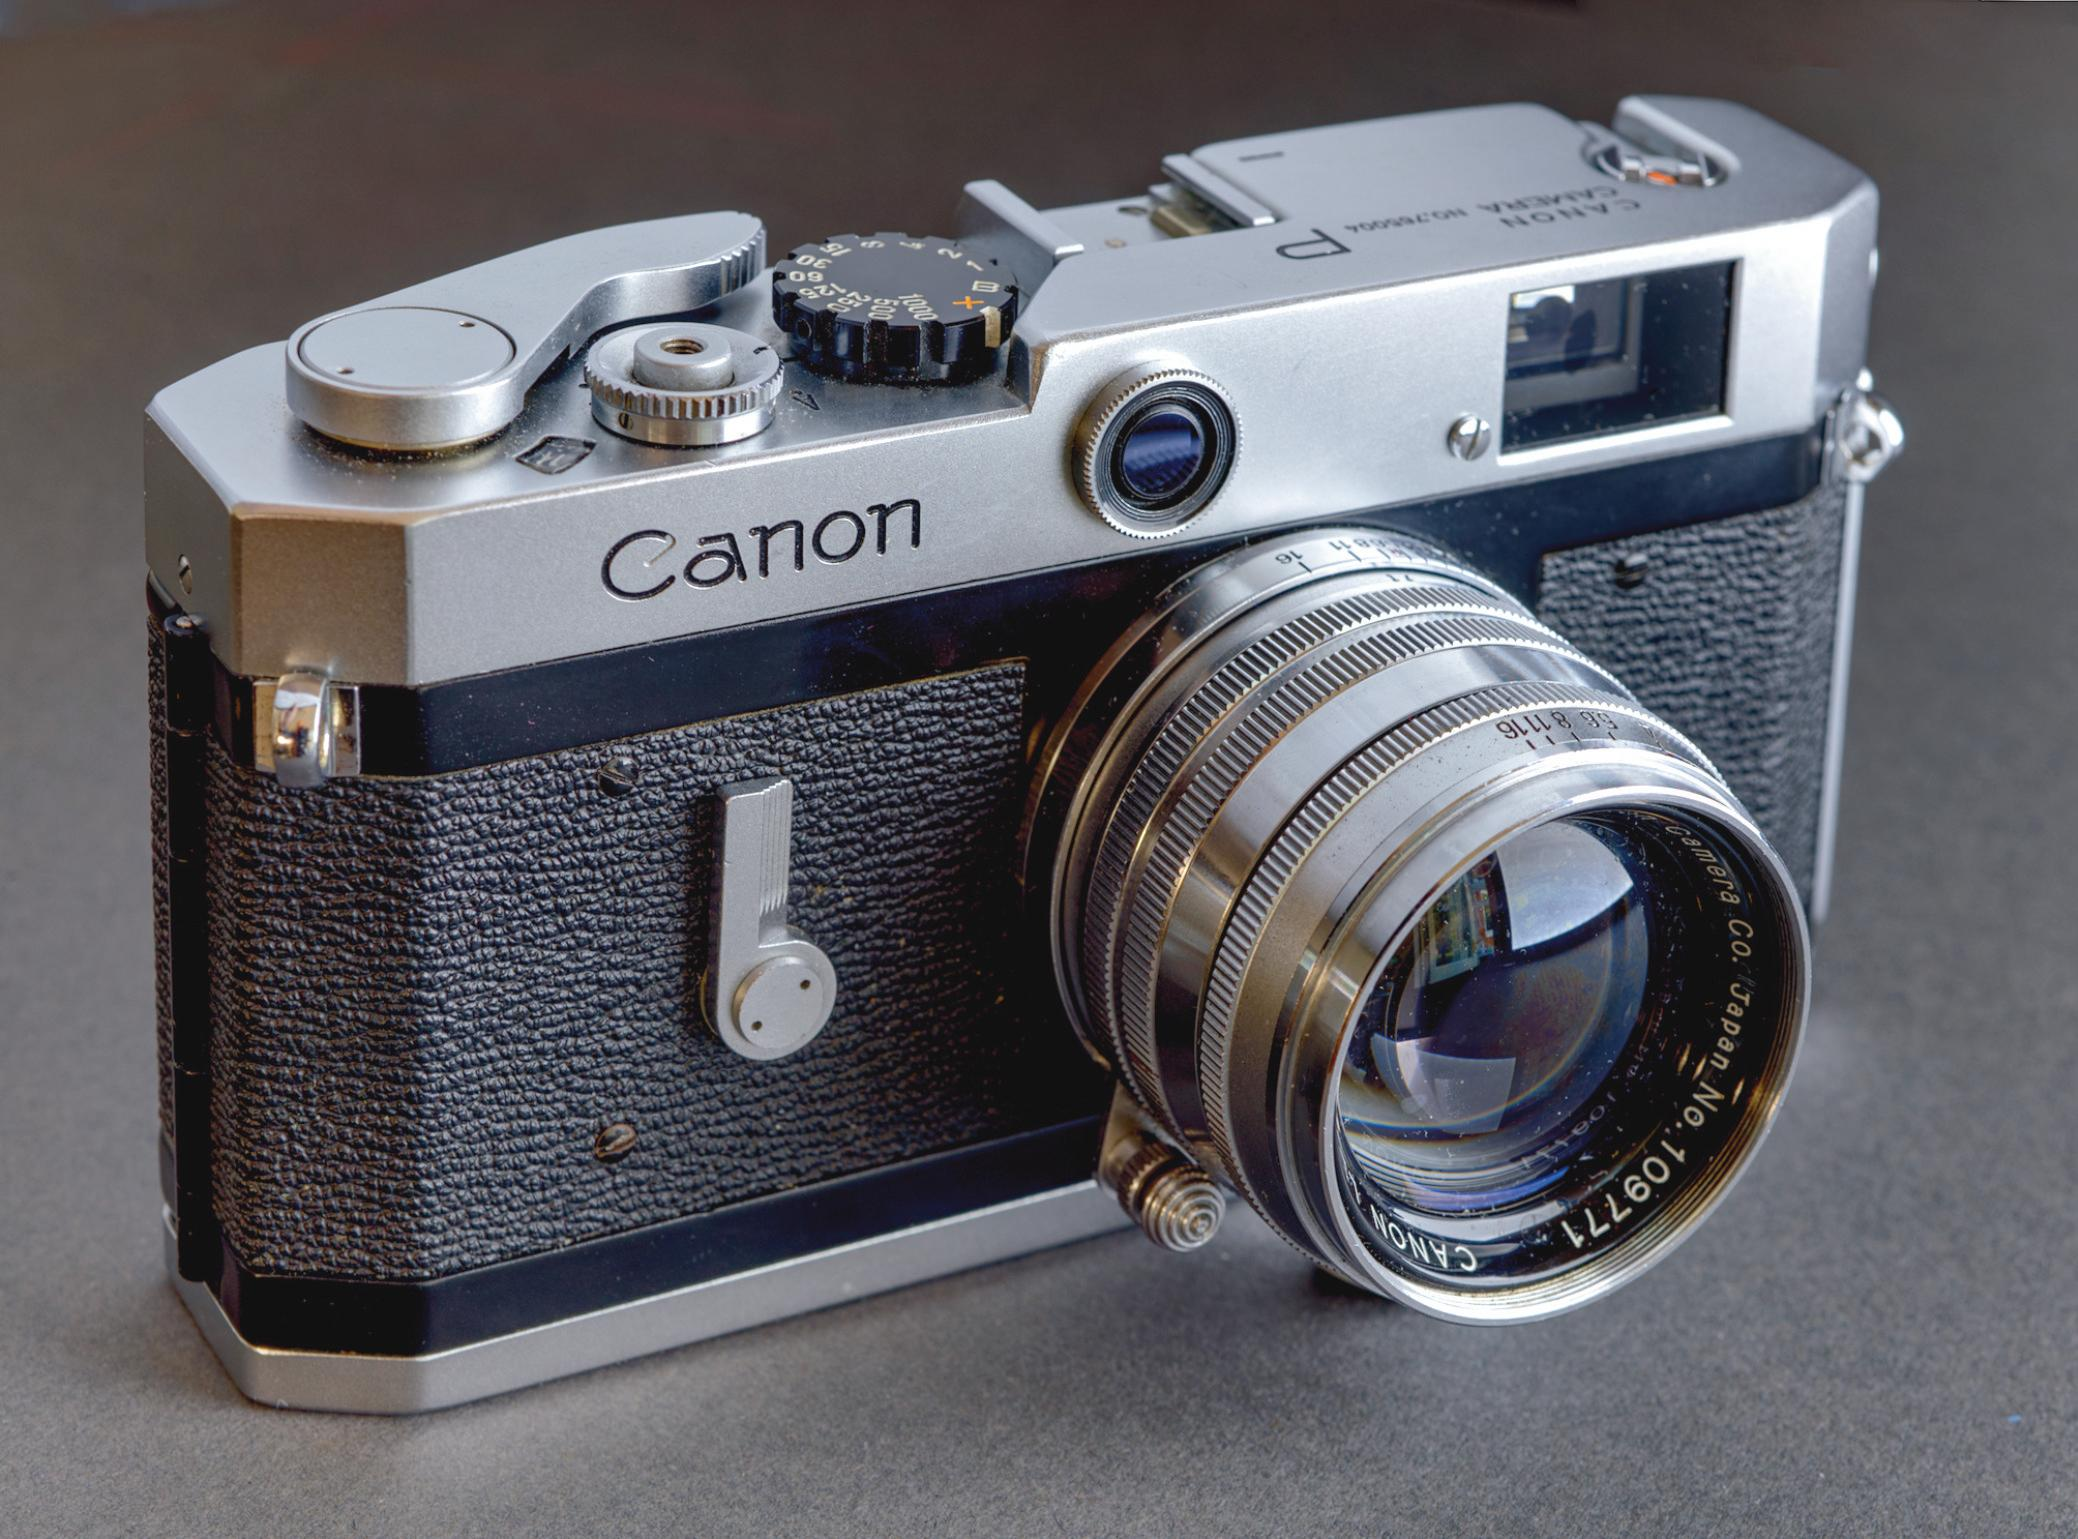 Page 14 of Canon P A close look at a 'Populaire' 35mm rangefinder produced by Canon in the 1950s